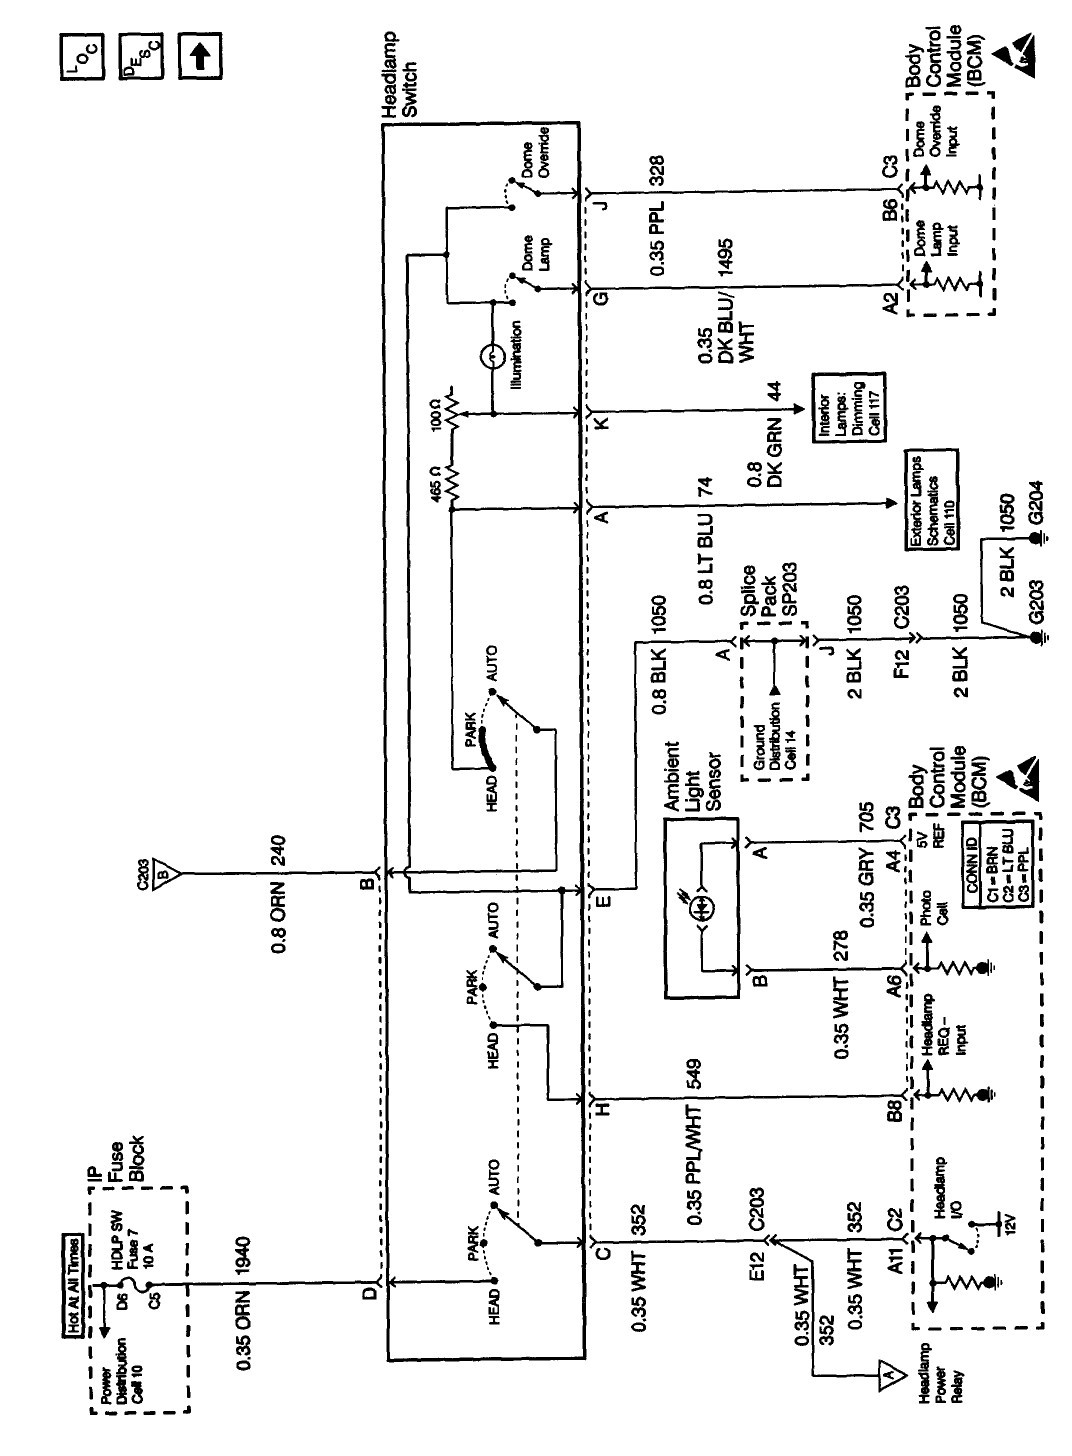 1999 Chevy Starter Wiring Diagram Library Bosch Al902x For S 10 Light Switch U2022 S10